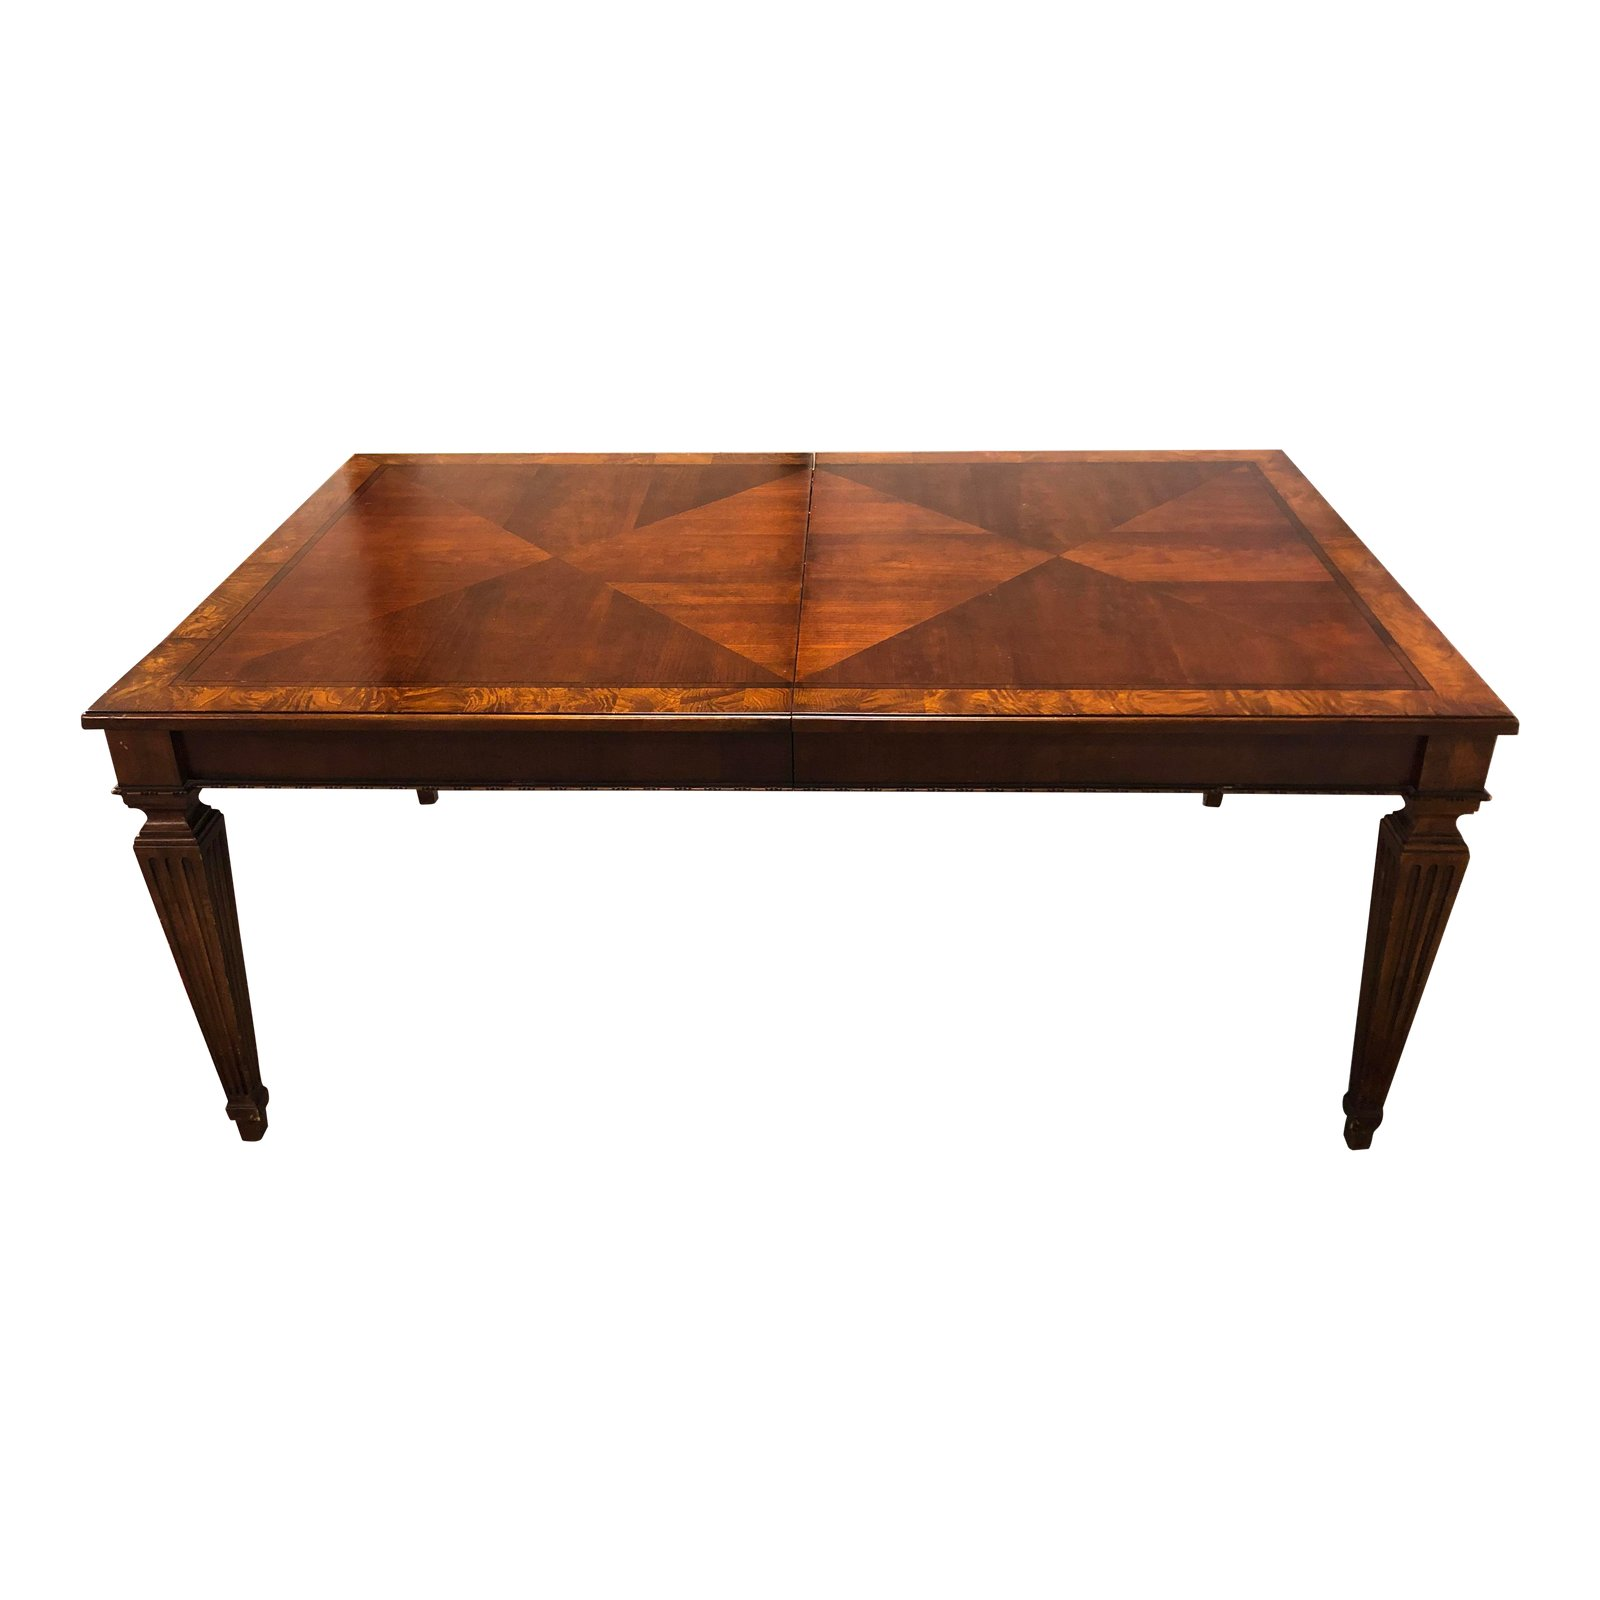 Ethan Allen Goodwin Dining Table, Ethan Allen Dining Room Tables